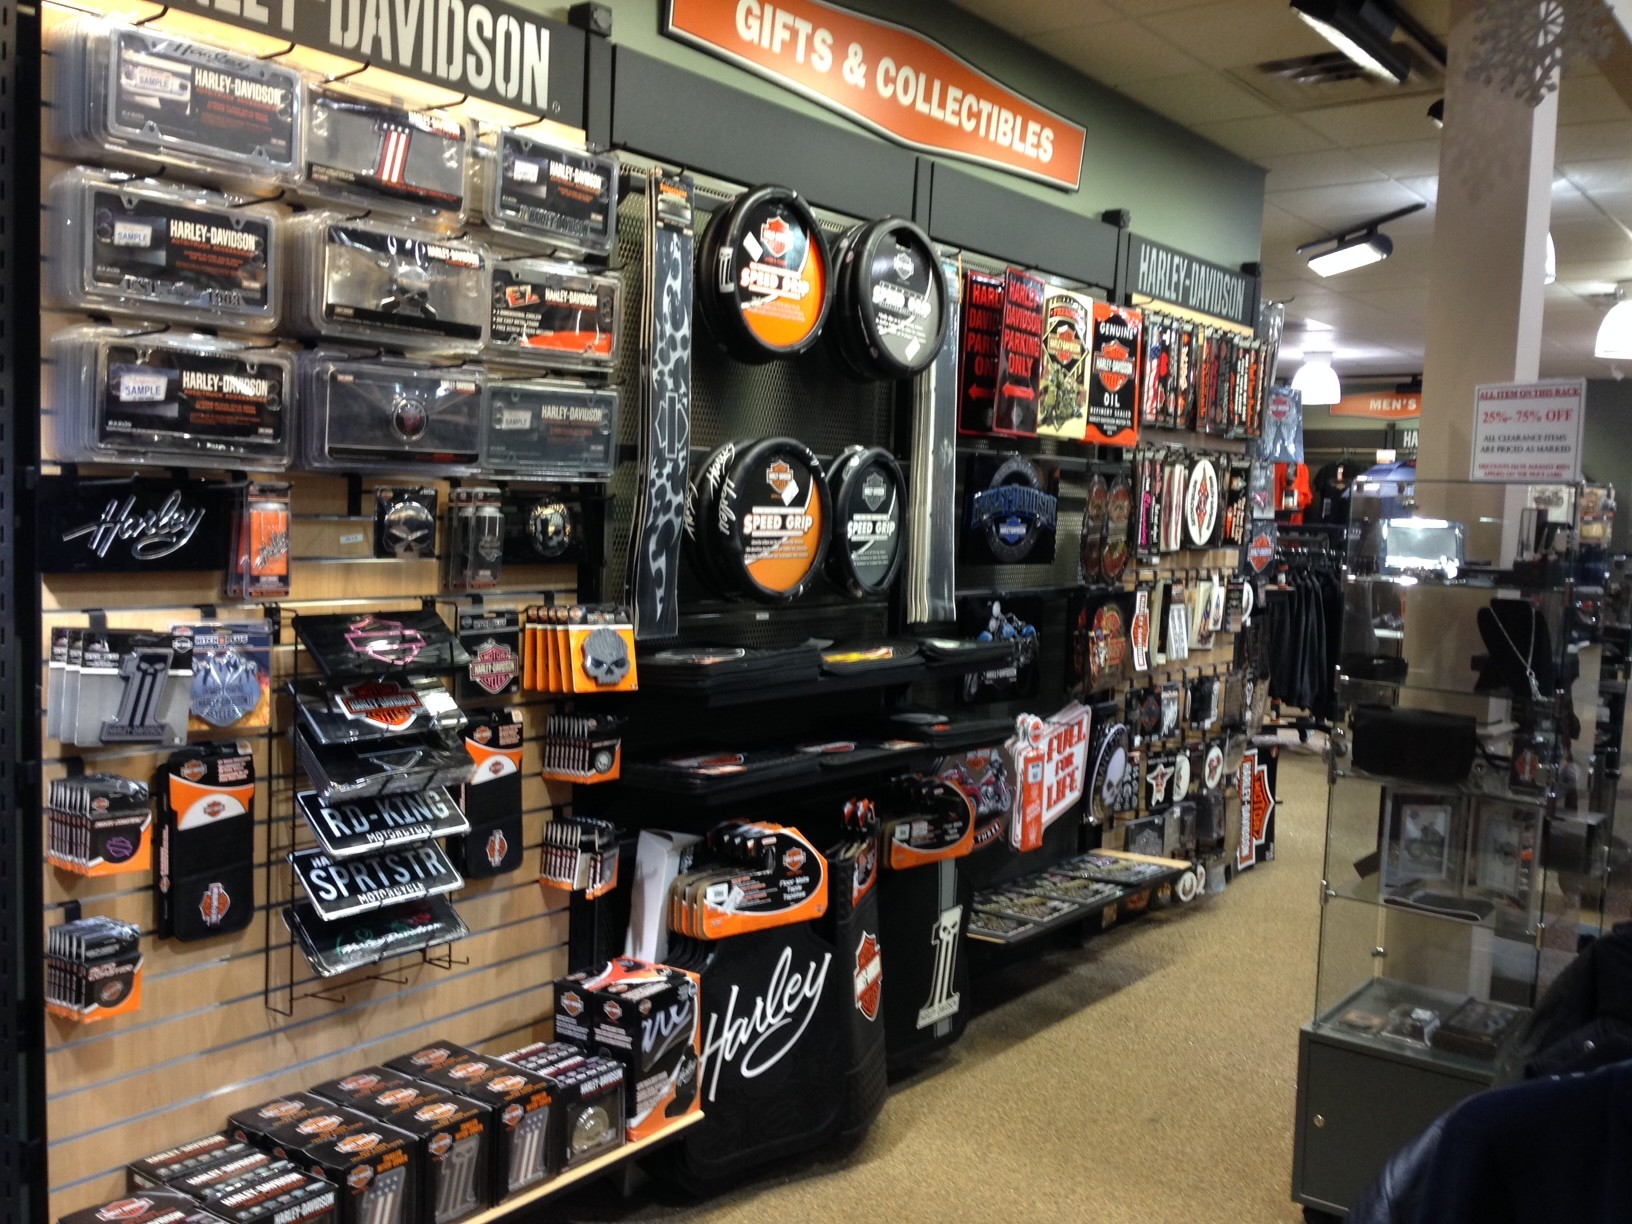 mountain state harley davidson gifts collectibles home accessories